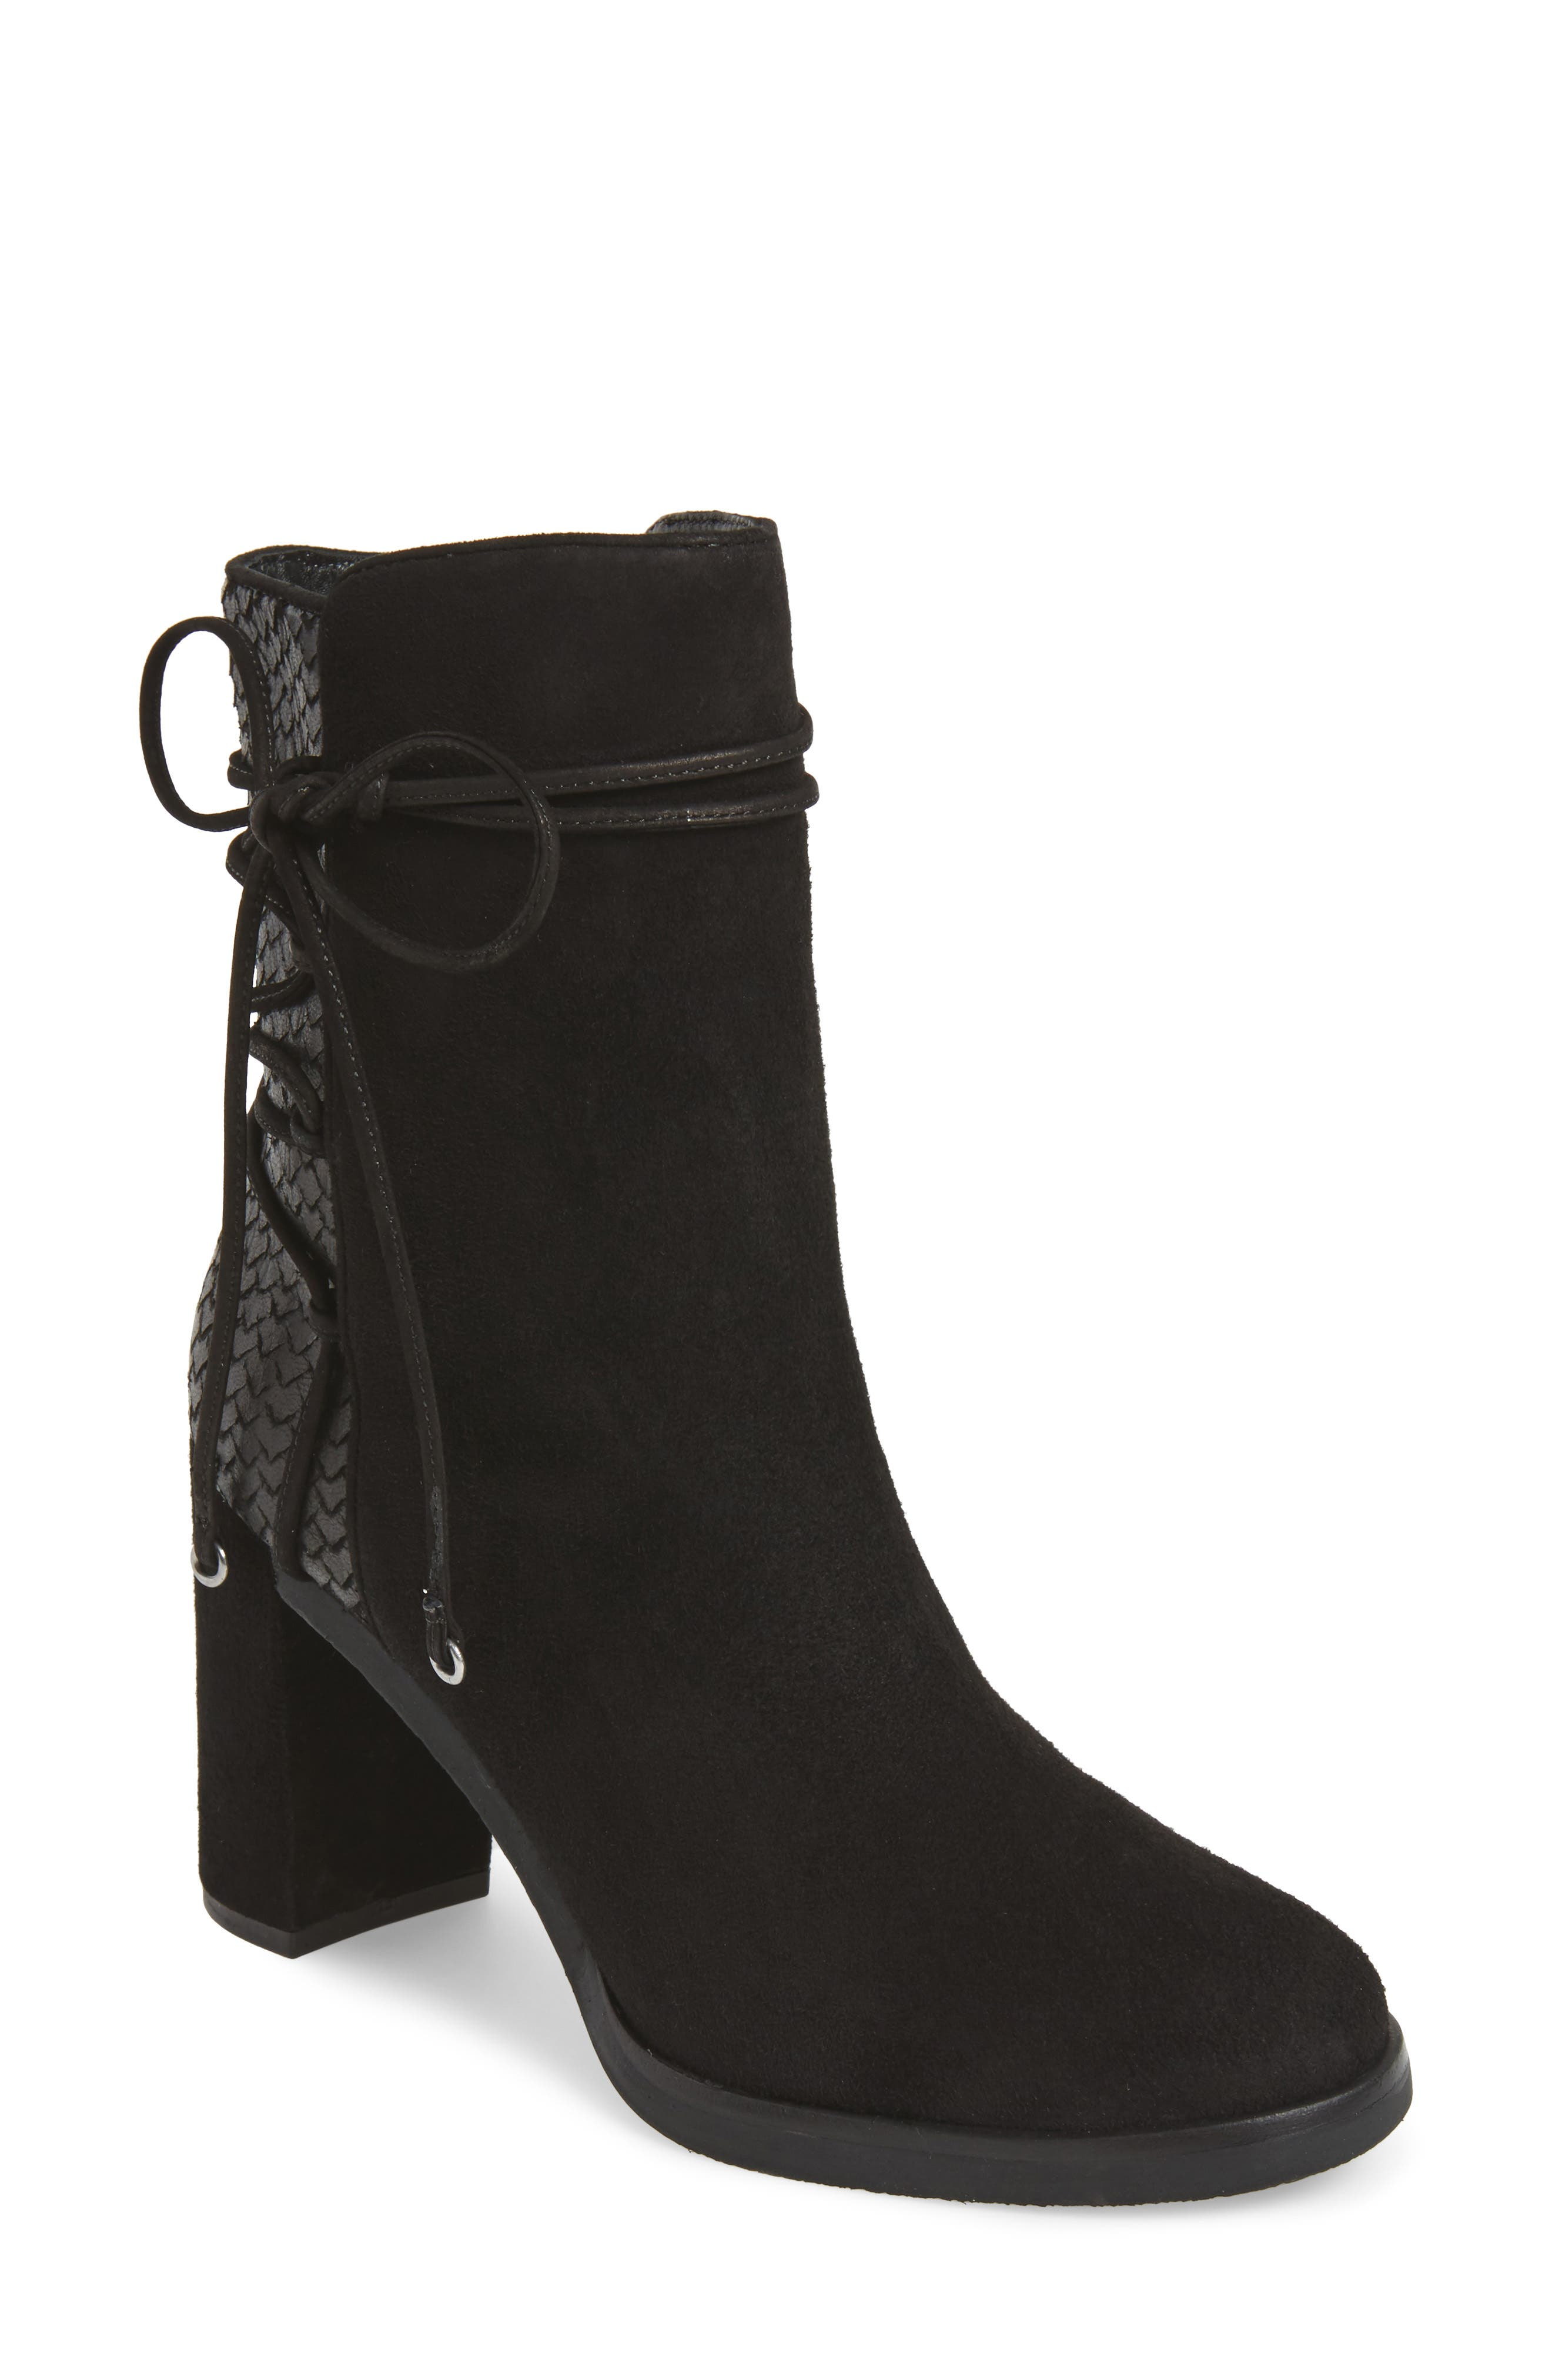 Adley Ankle Wrap Boot,                         Main,                         color, 001